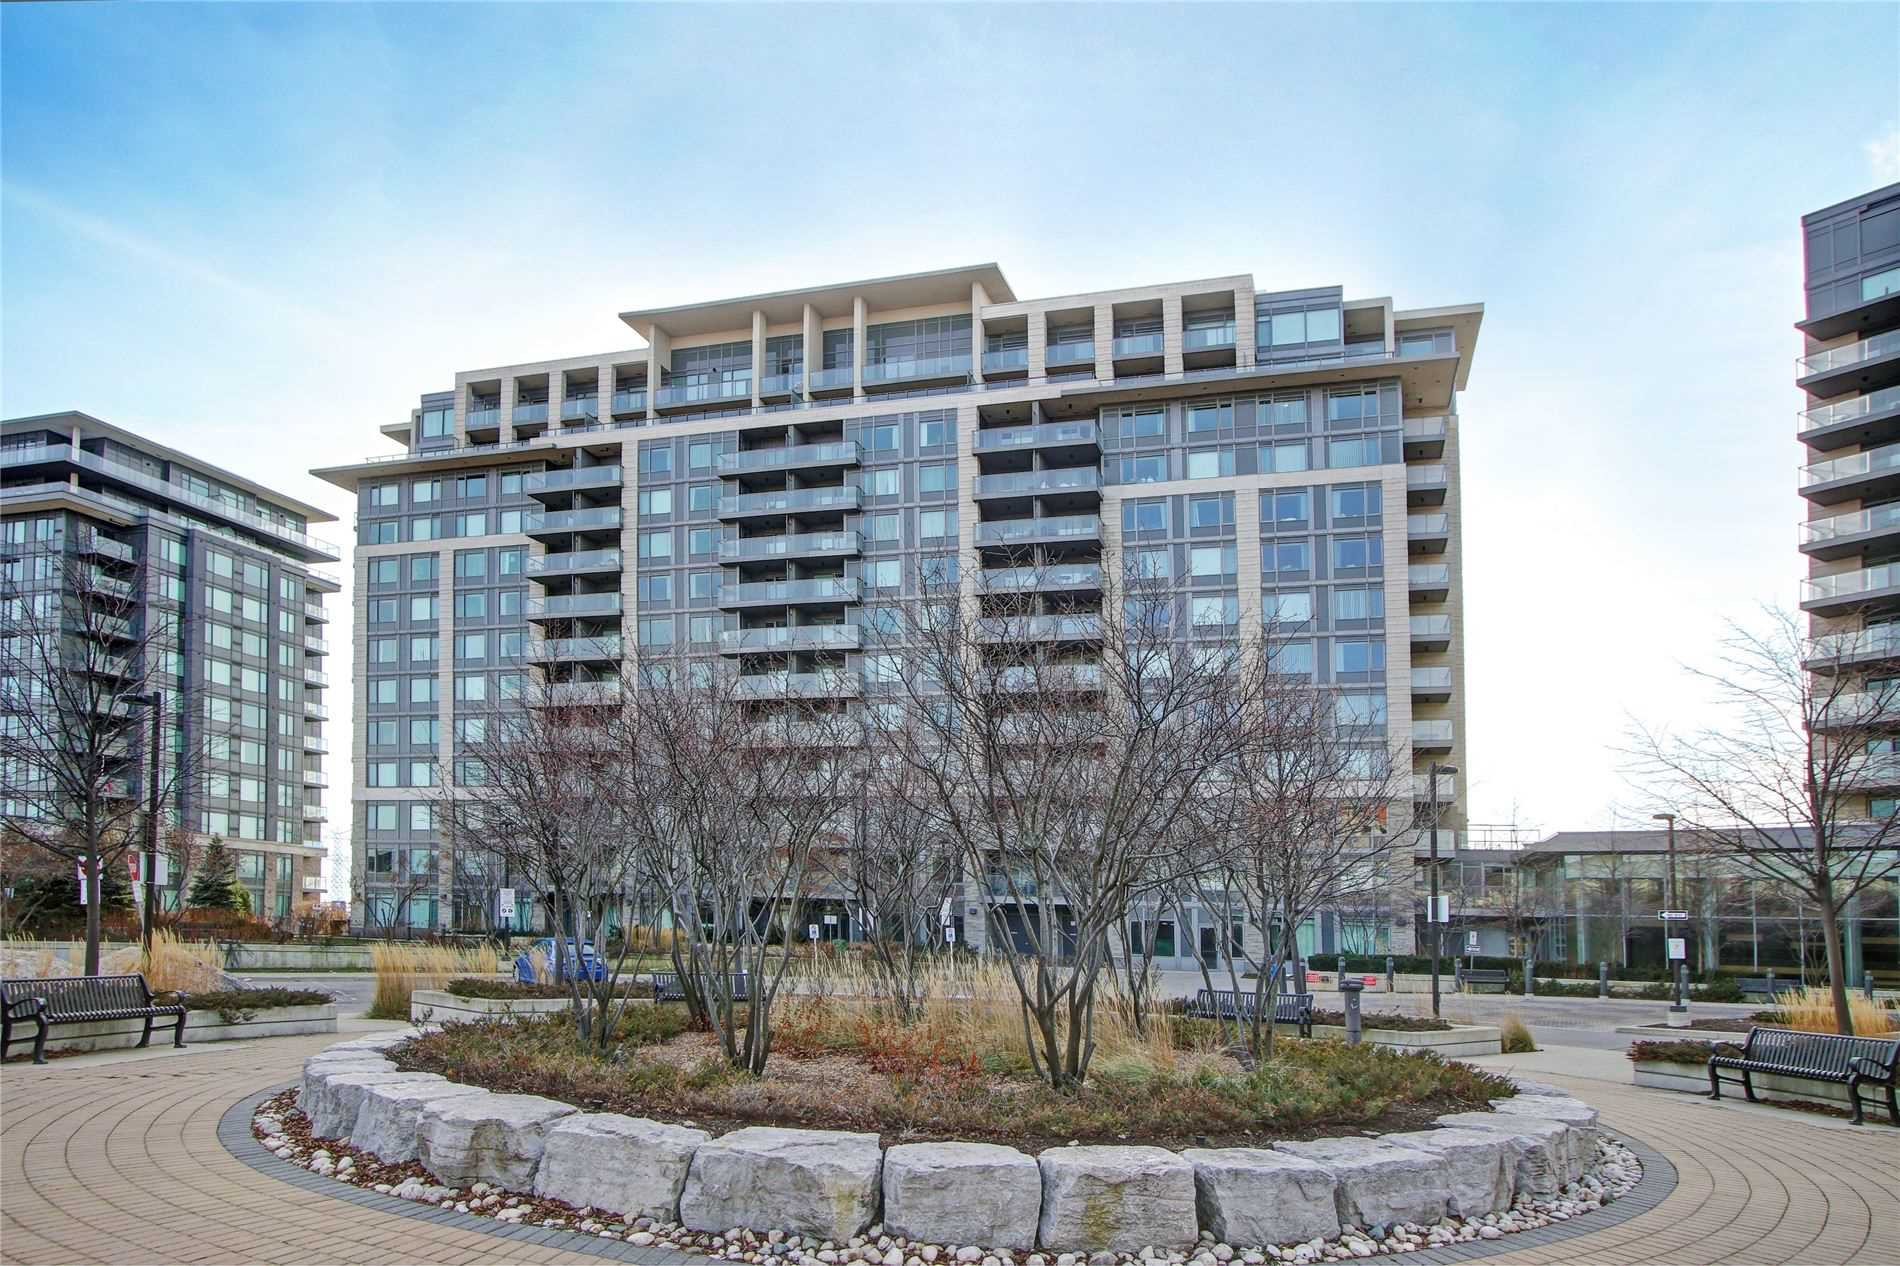 Main Photo: 273 South Park Rd 101 in Markham: Condo for sale : MLS®# N4653969